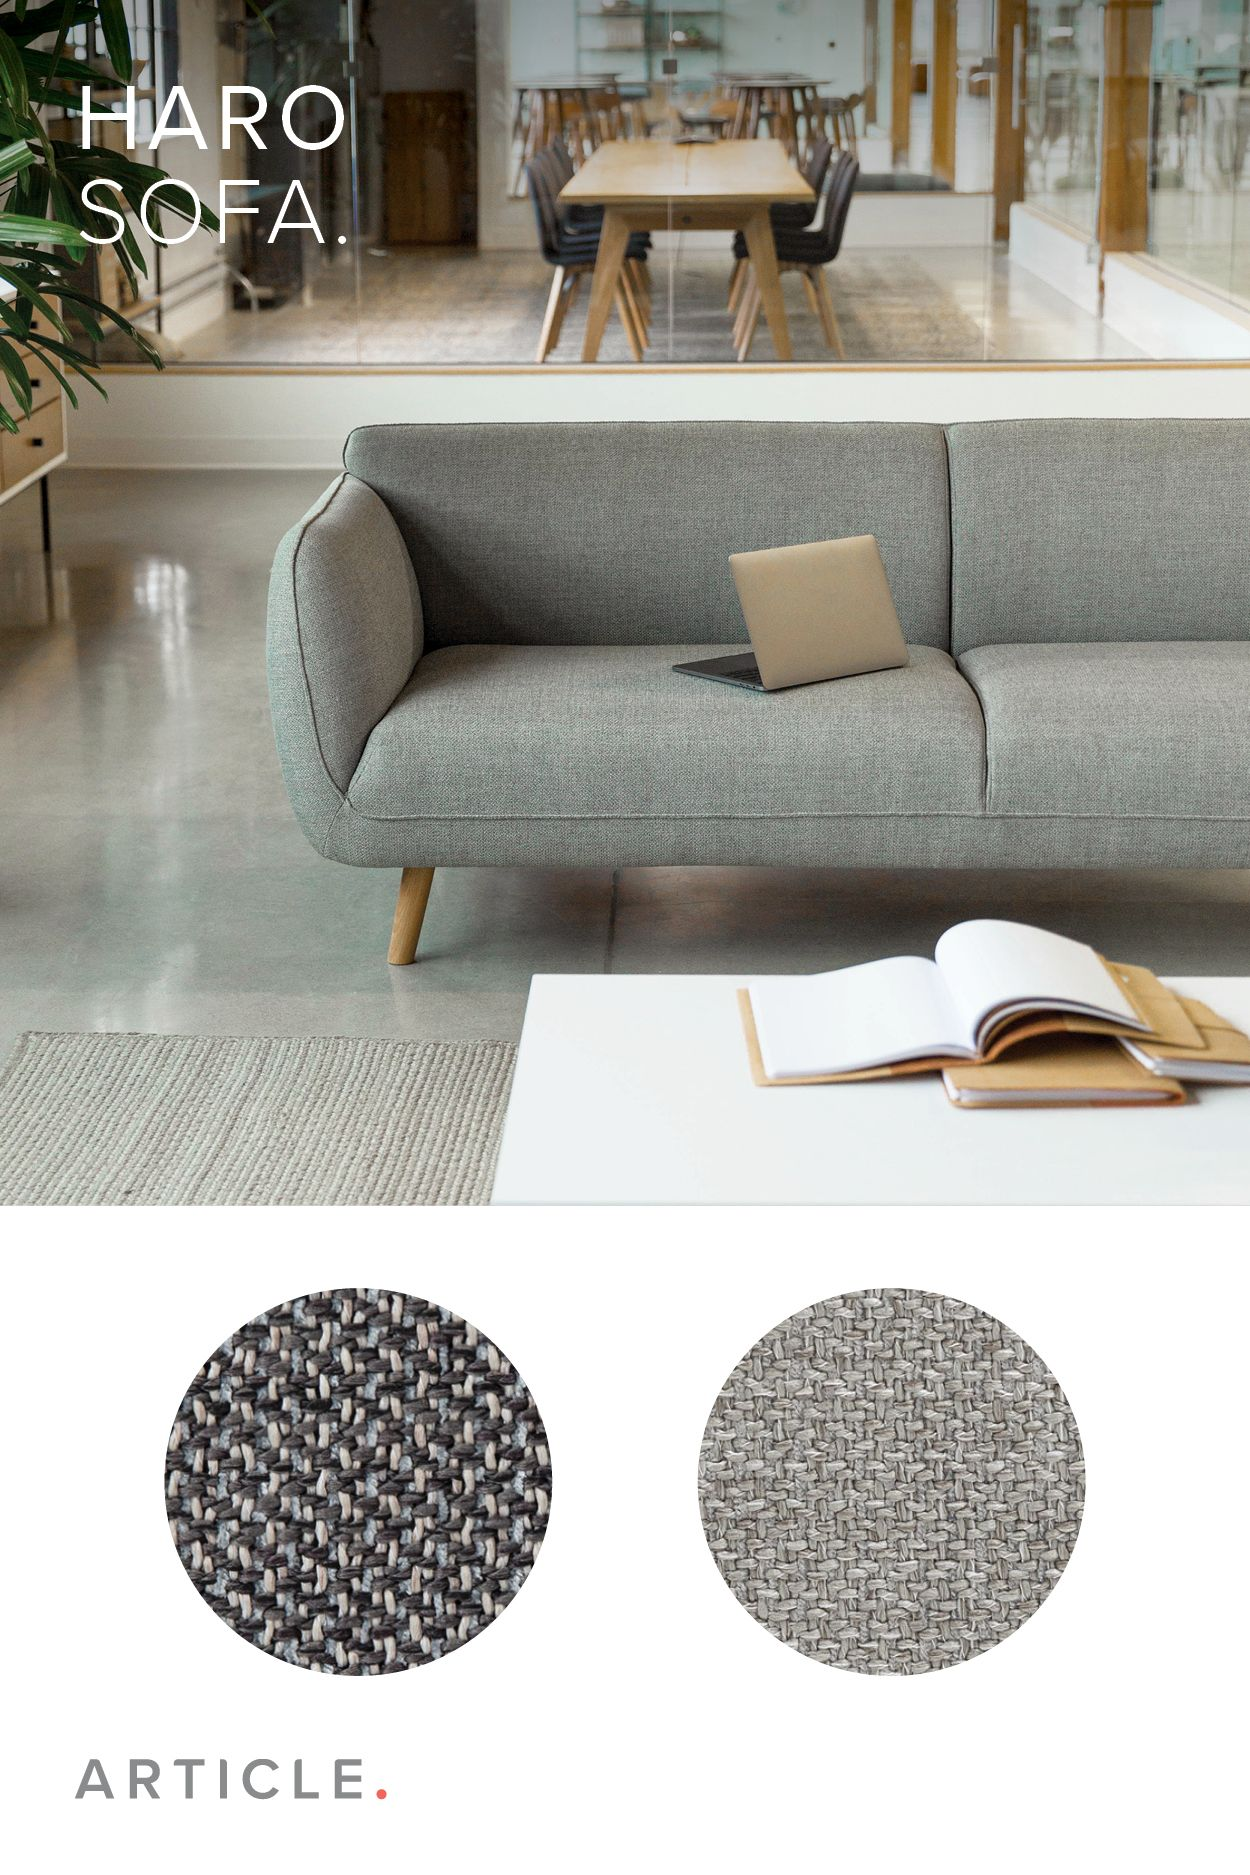 Can Furniture Elicit Emotional Investment Every Detail Of The Haro Sofa Is As Carefull Contemporary Sofa Mid Century Modern Sofa Couch Mid Century Modern Sofa